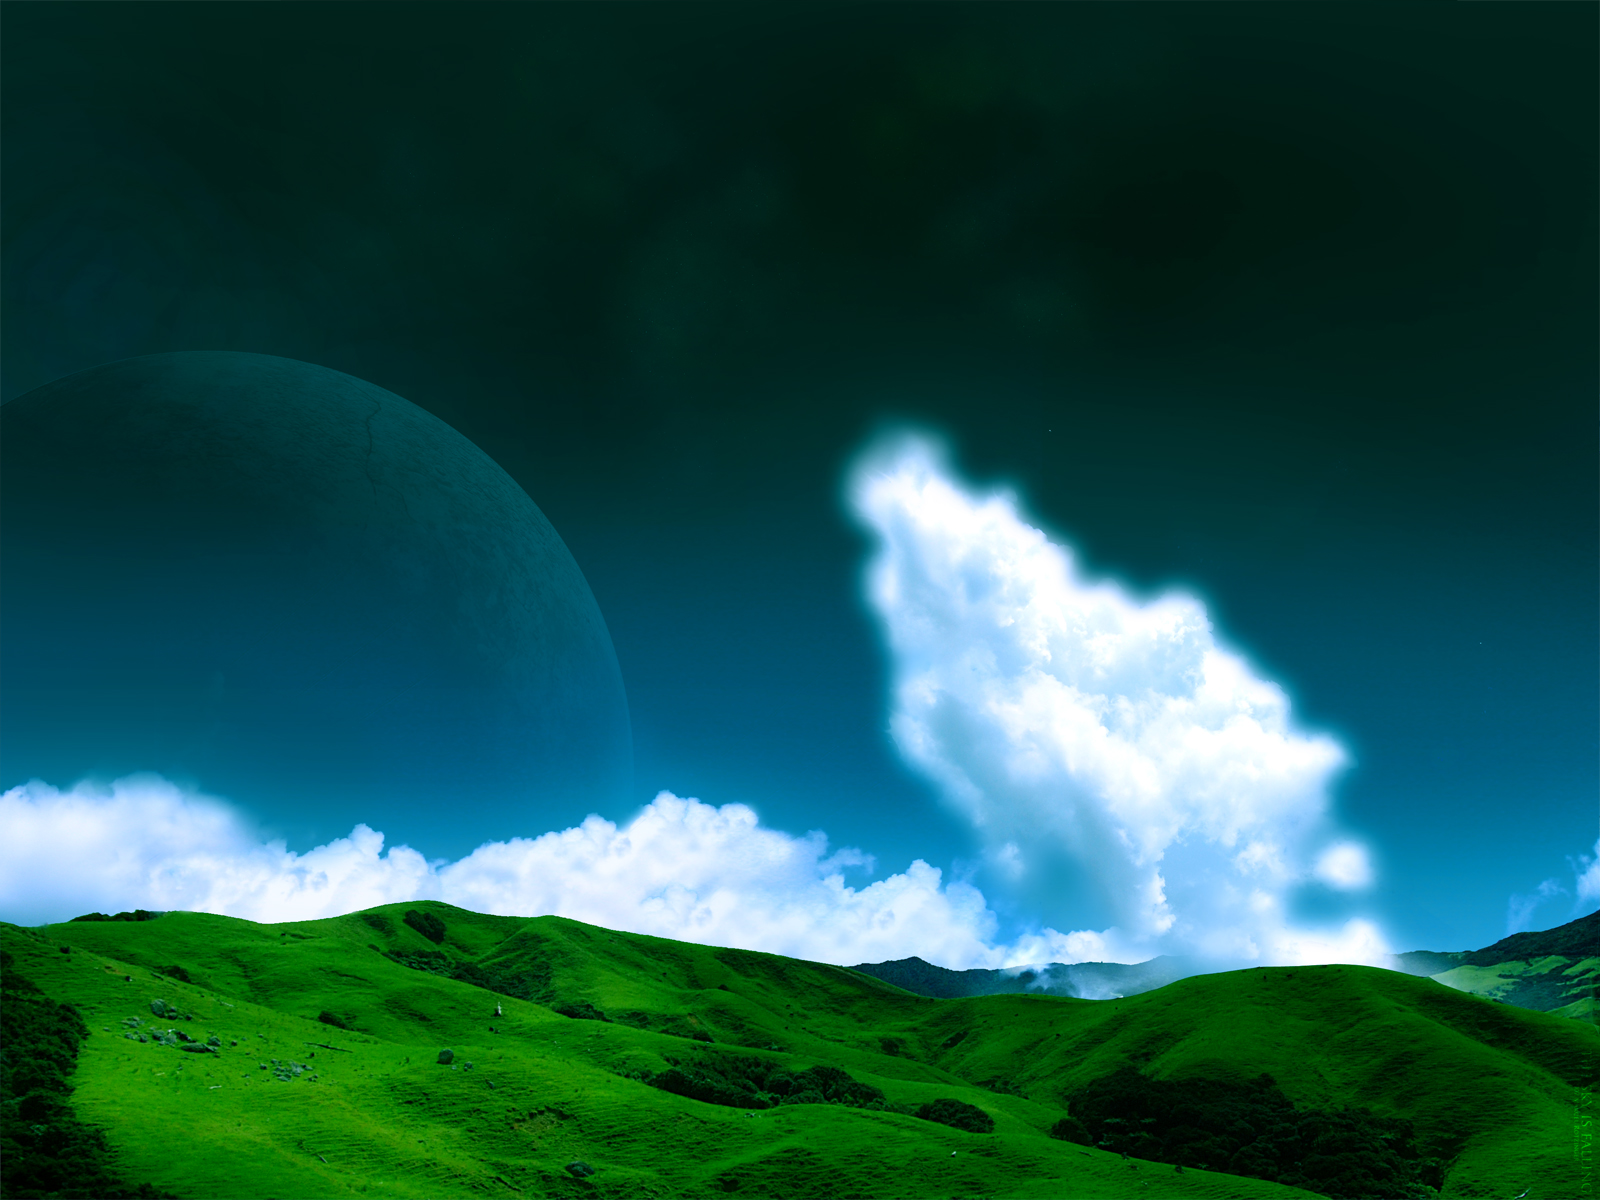 Sci Fi - Planet Rise  - Earth - Green - Grass - Cloud - Planet - Sky - Blue Wallpaper